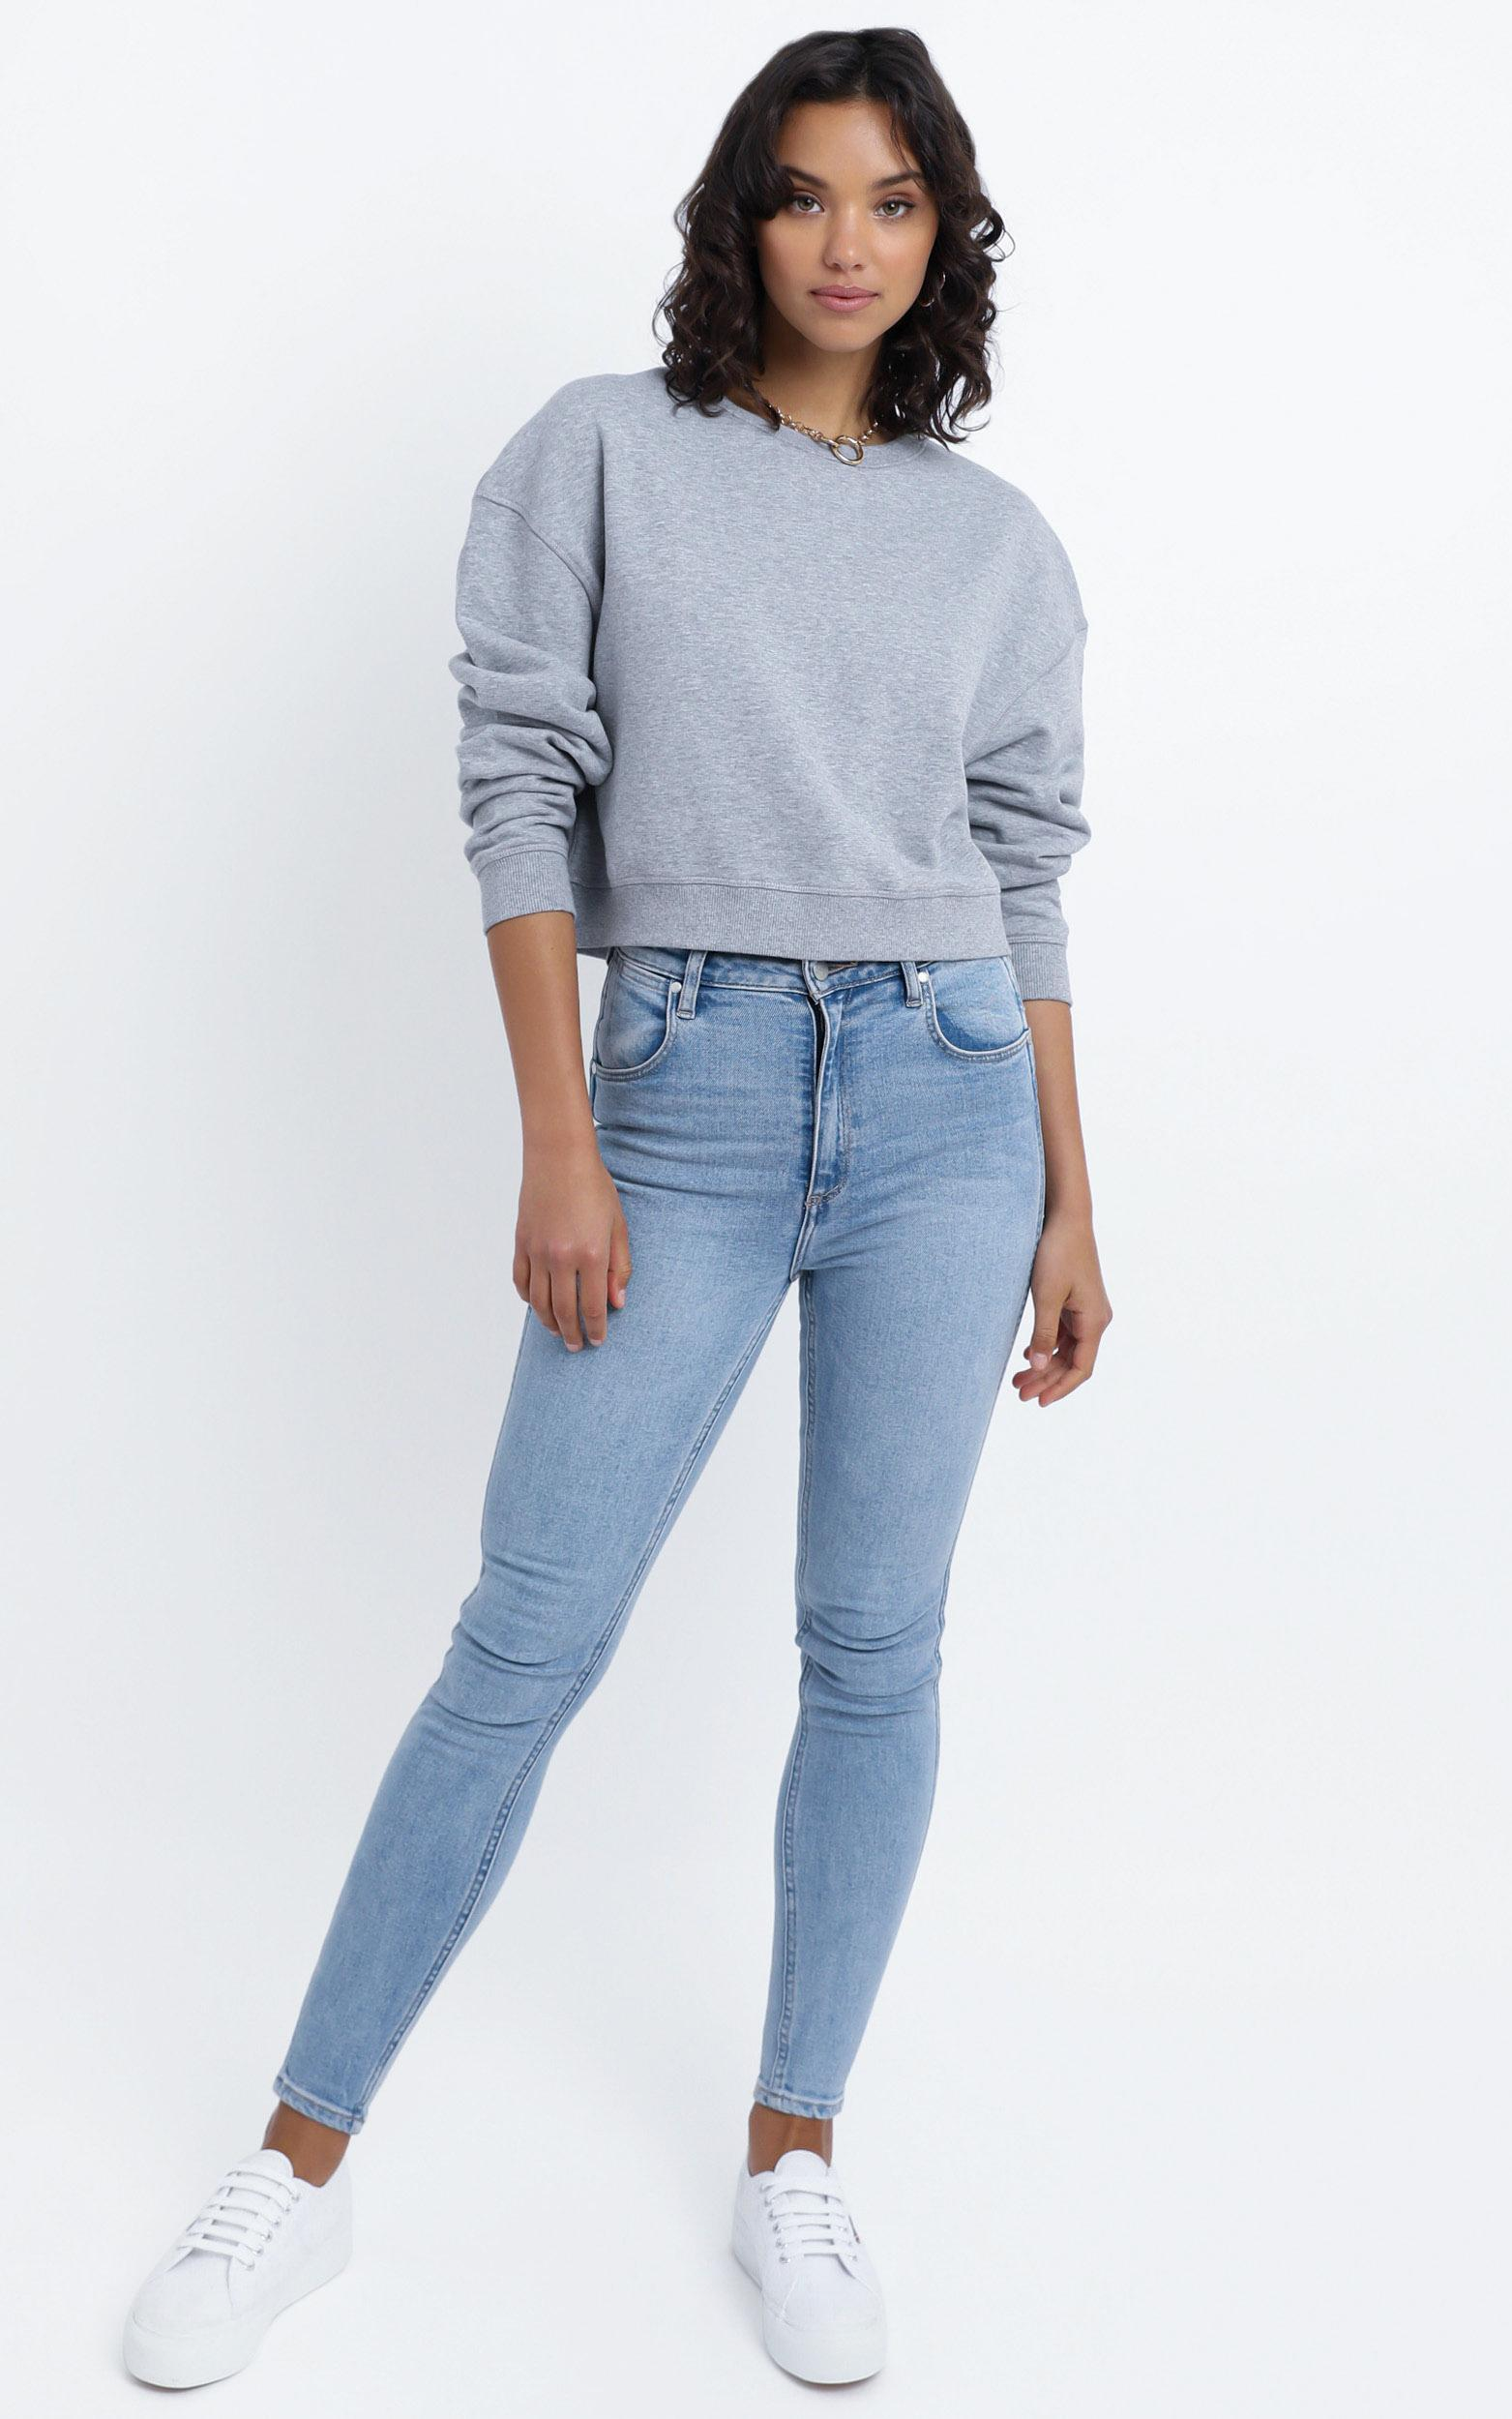 AS Colour - Crop Crew in Grey Marle - XL, Grey, hi-res image number null